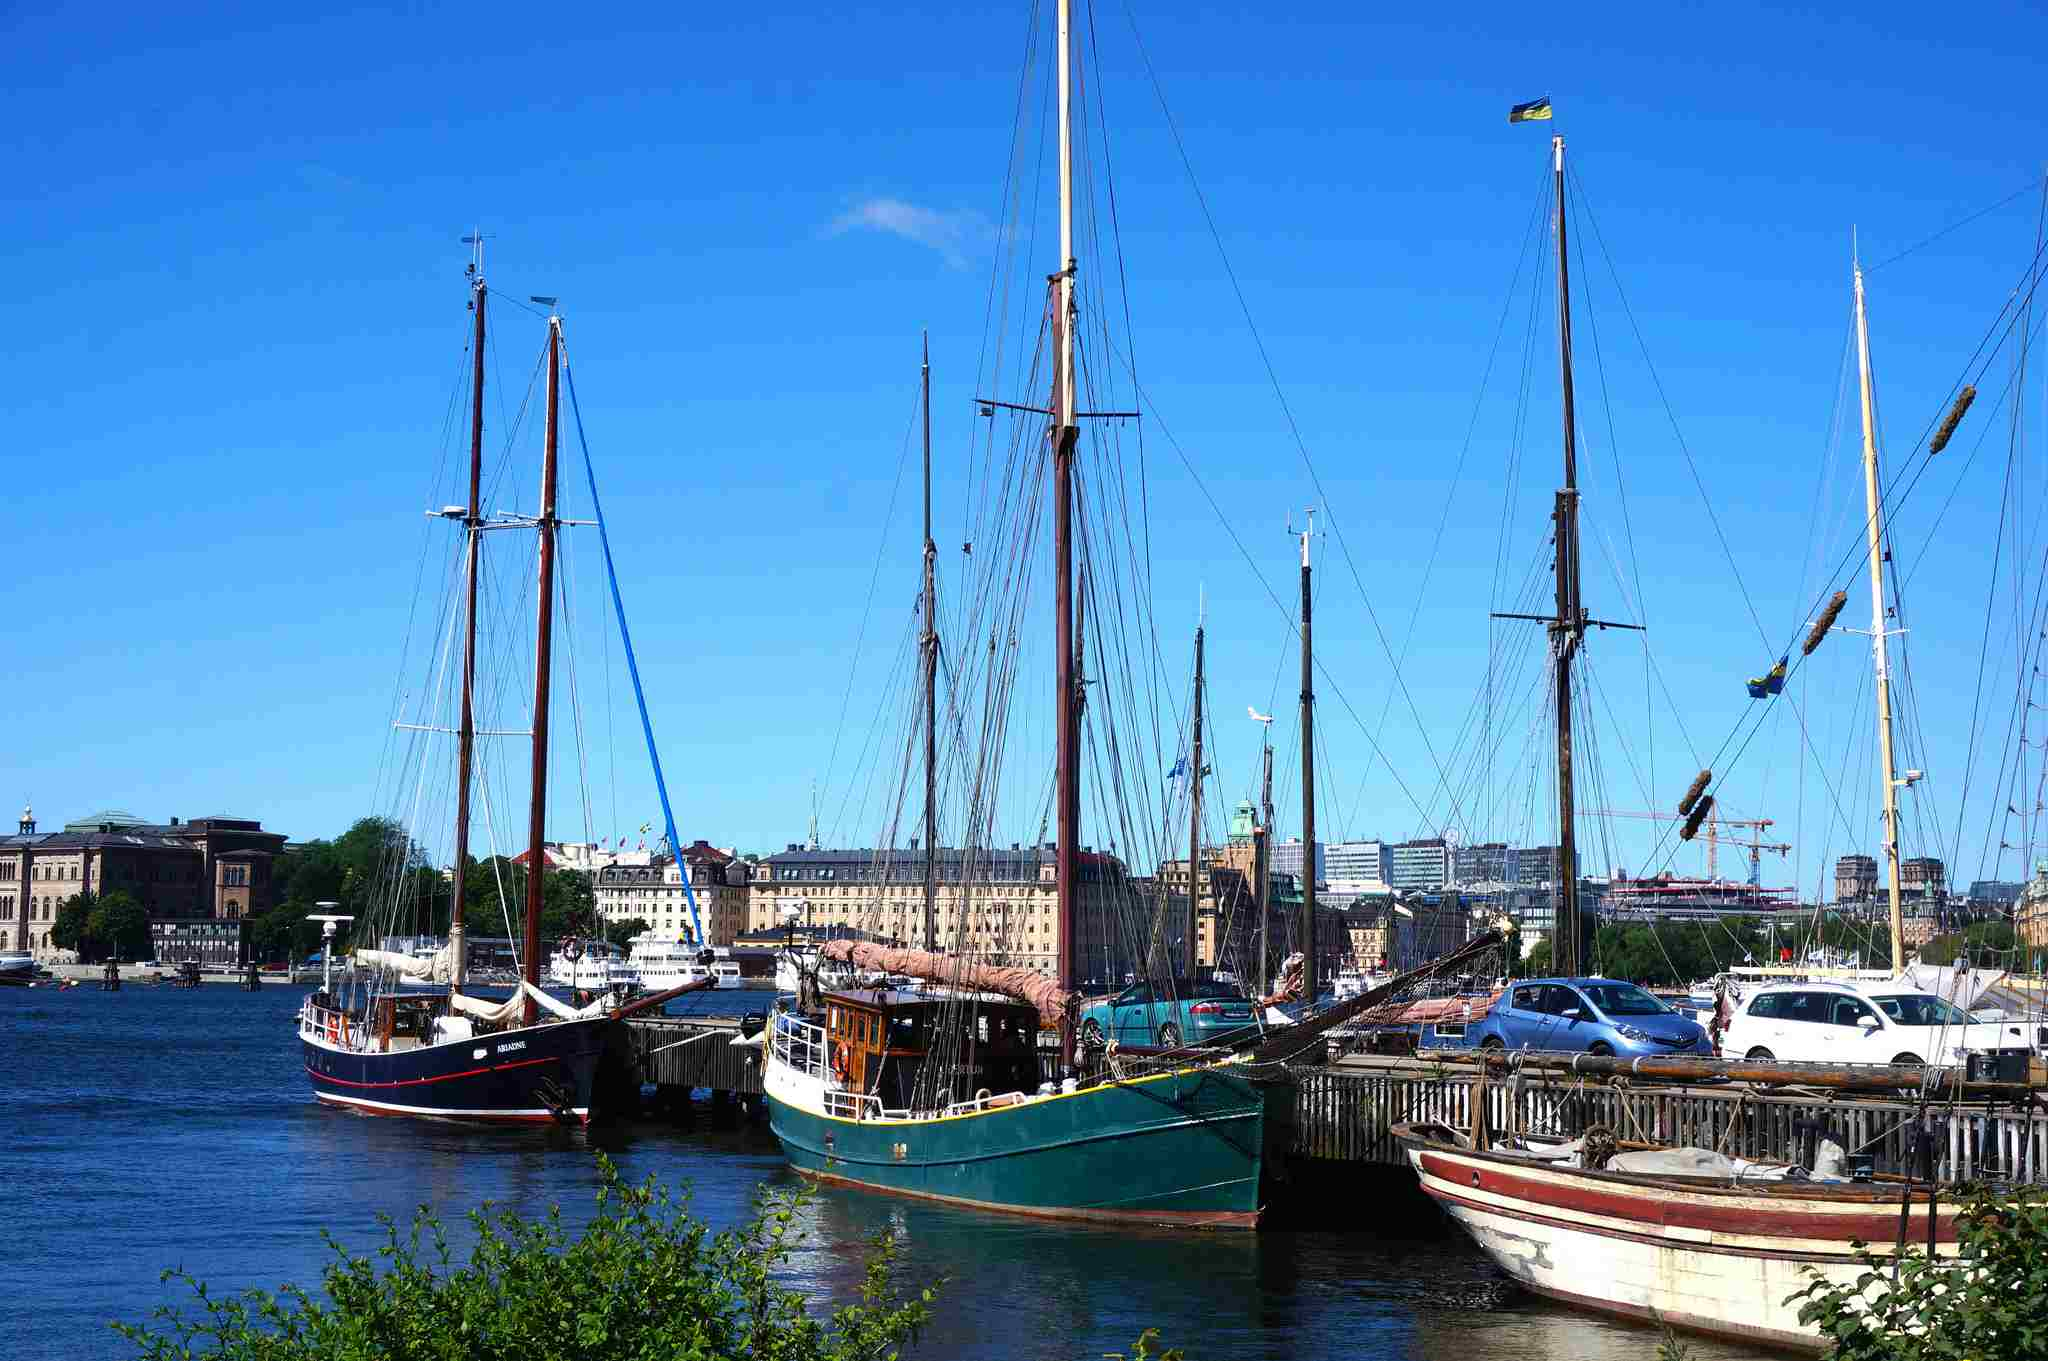 A view of Djurgarden on the water.